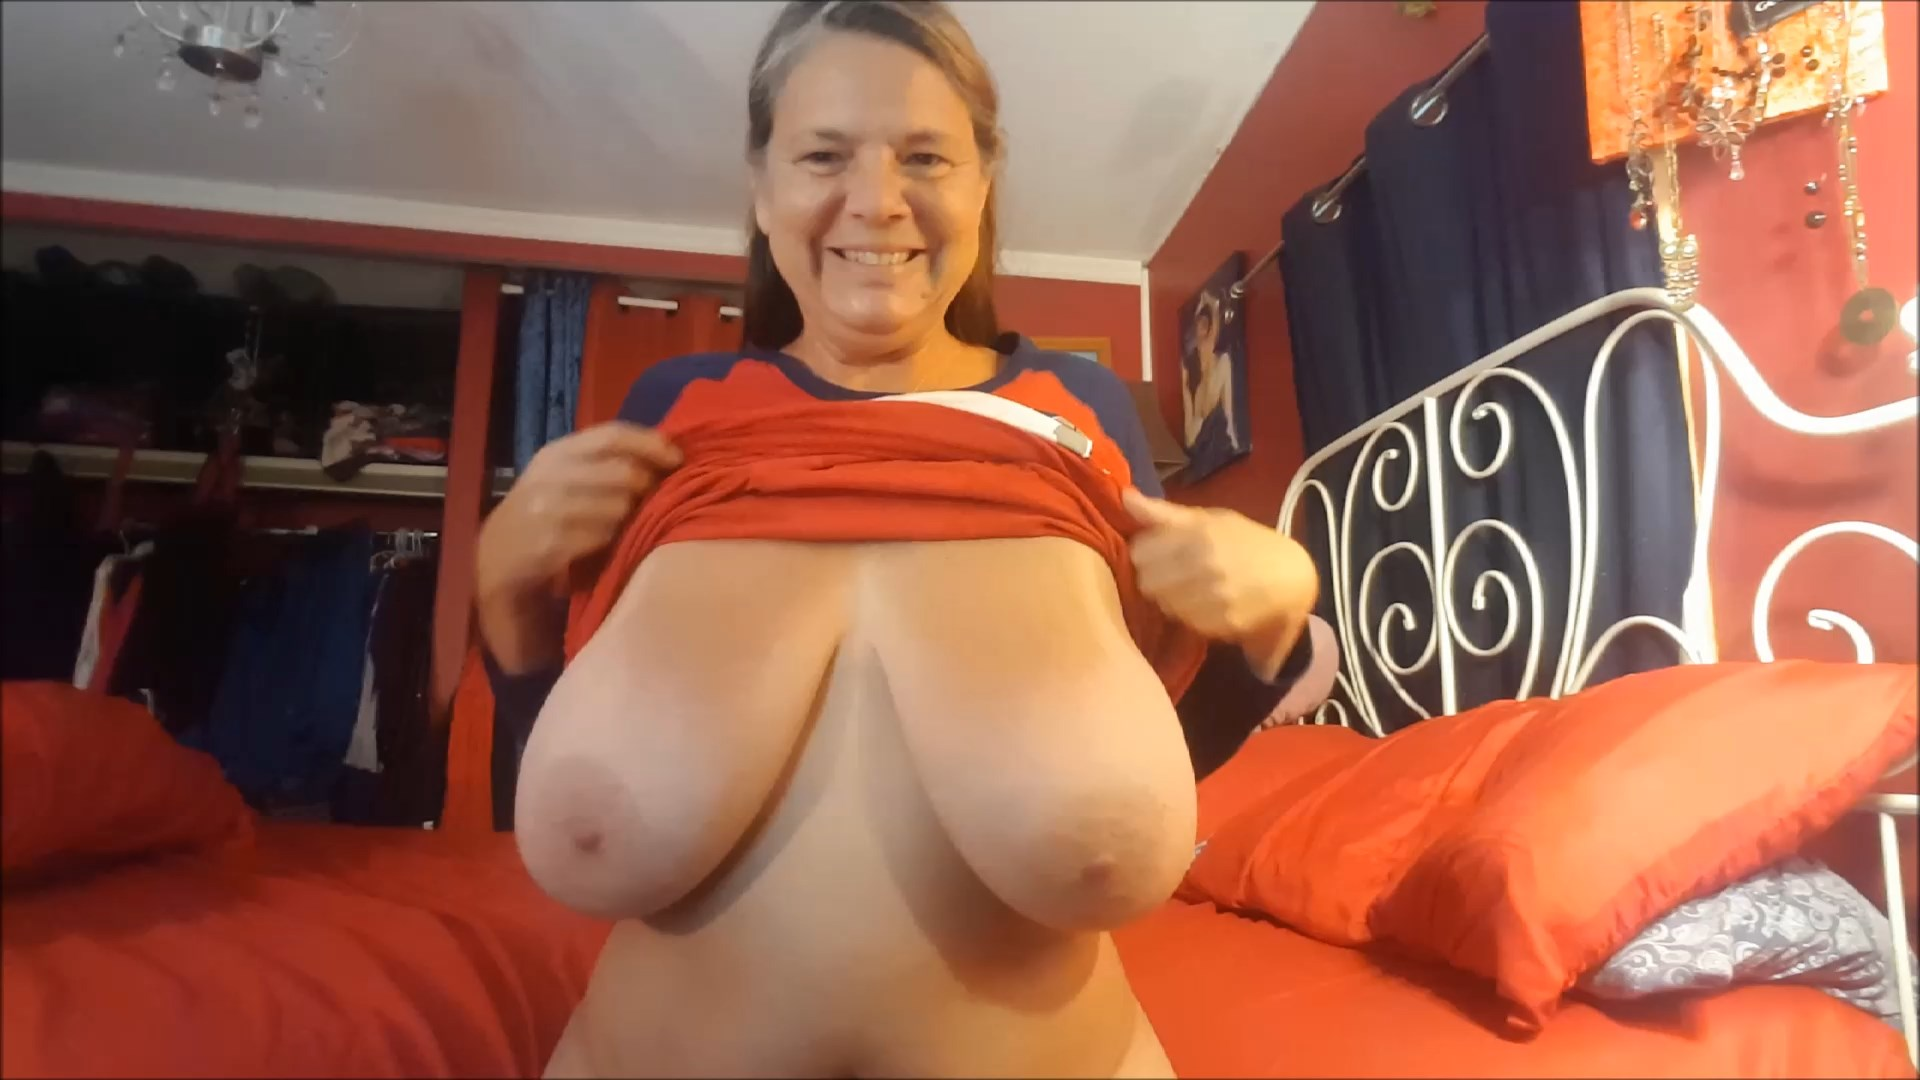 Milf Carrie Moon - Stepmom shows her Massive Tits and Butt